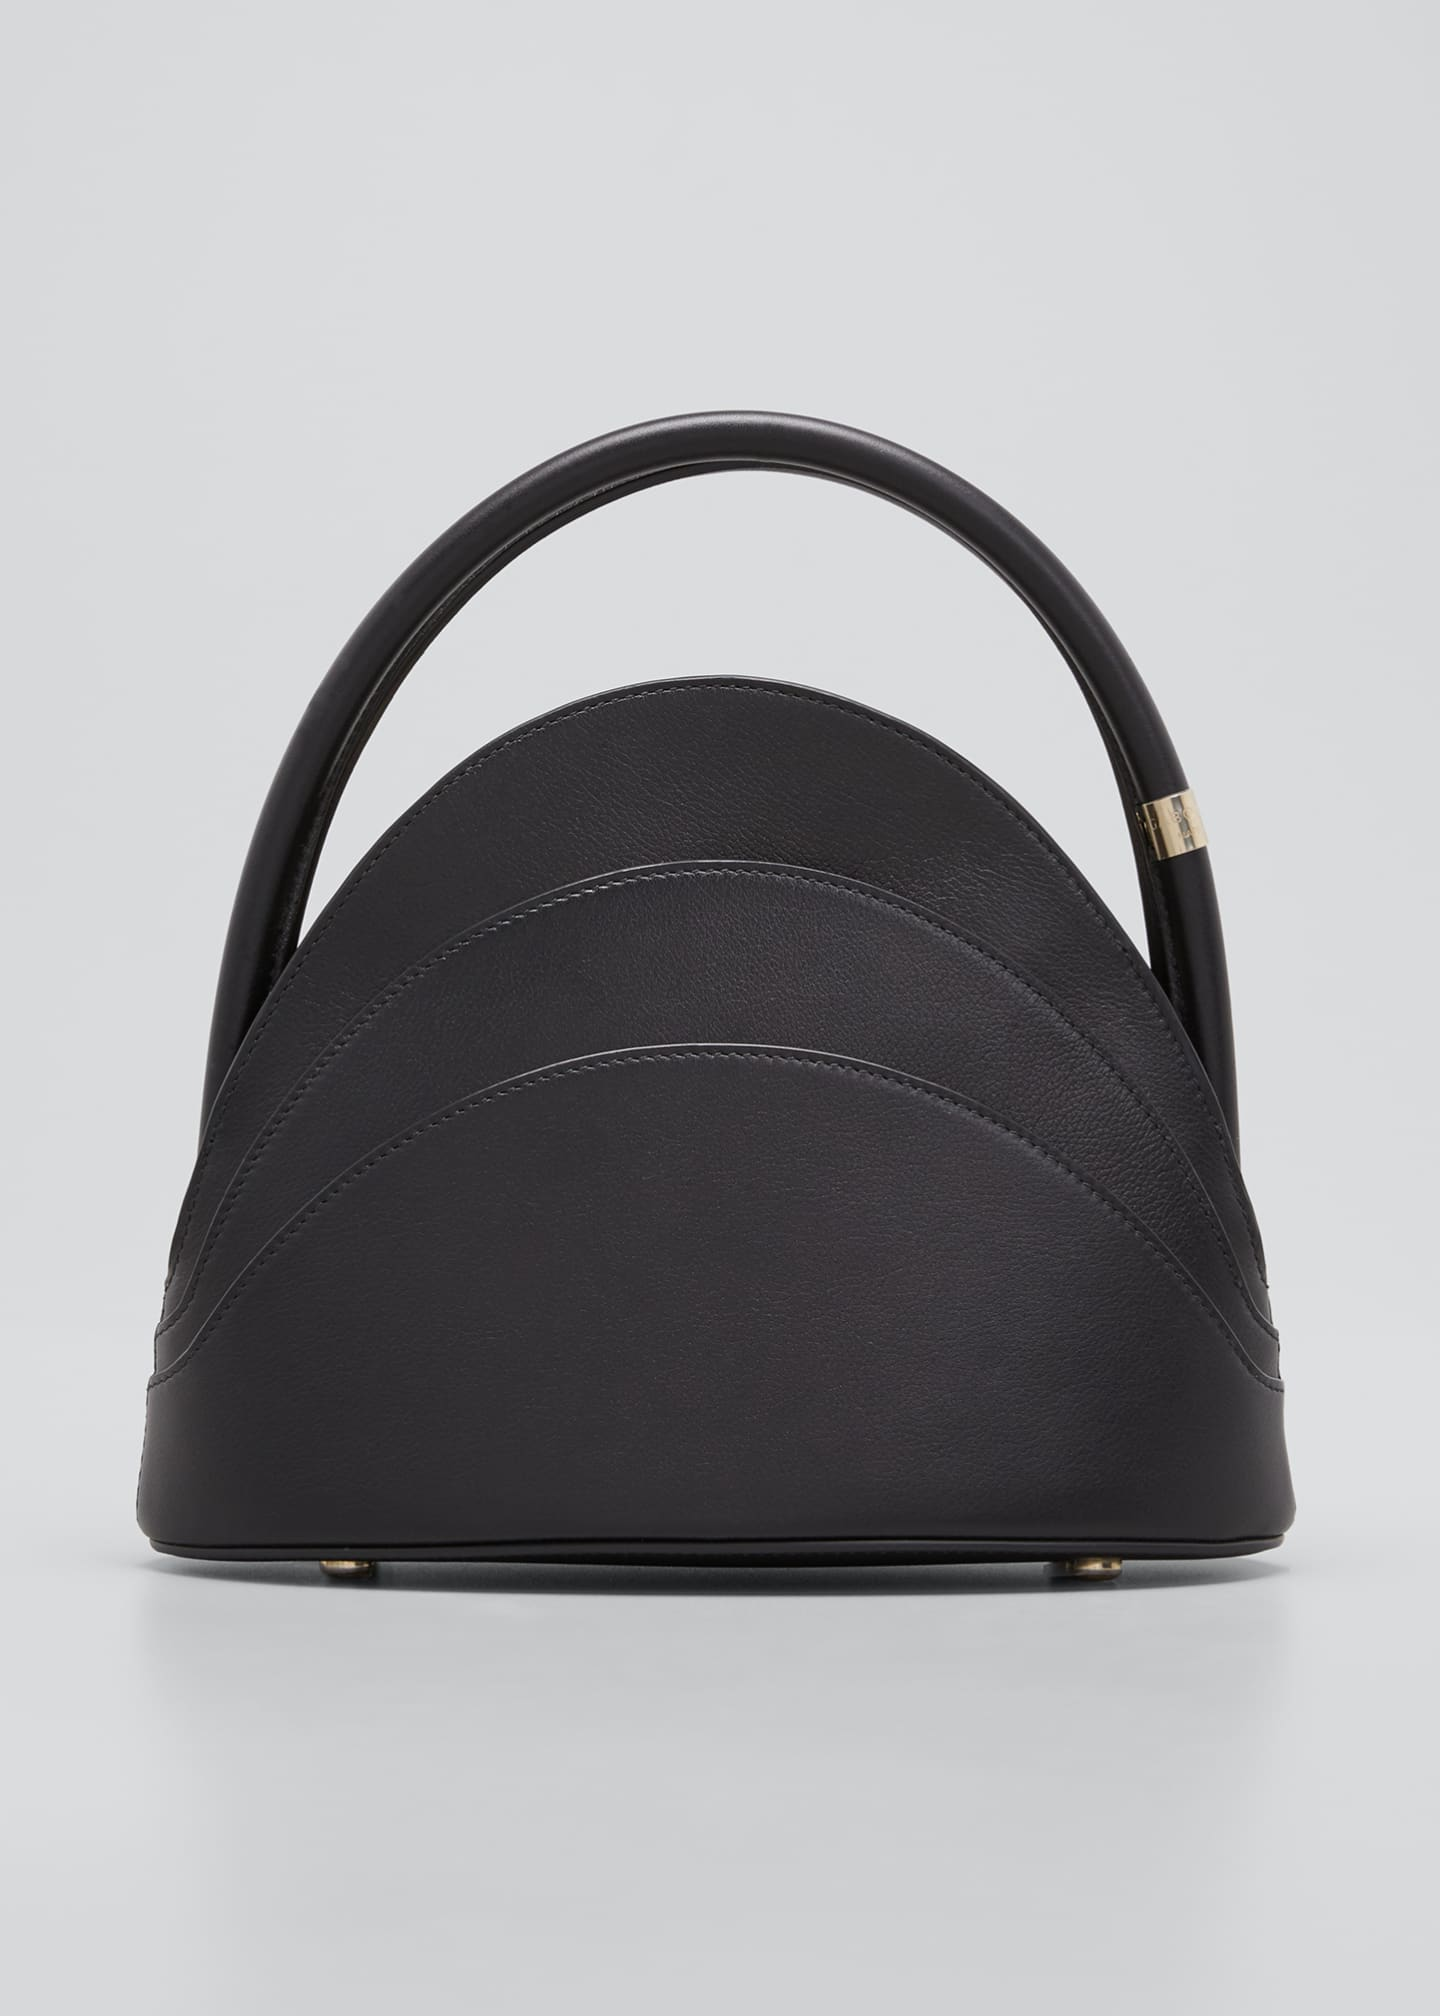 Gabo Guzzo Millefoglie Small Layered Leather Top-Handle Bag